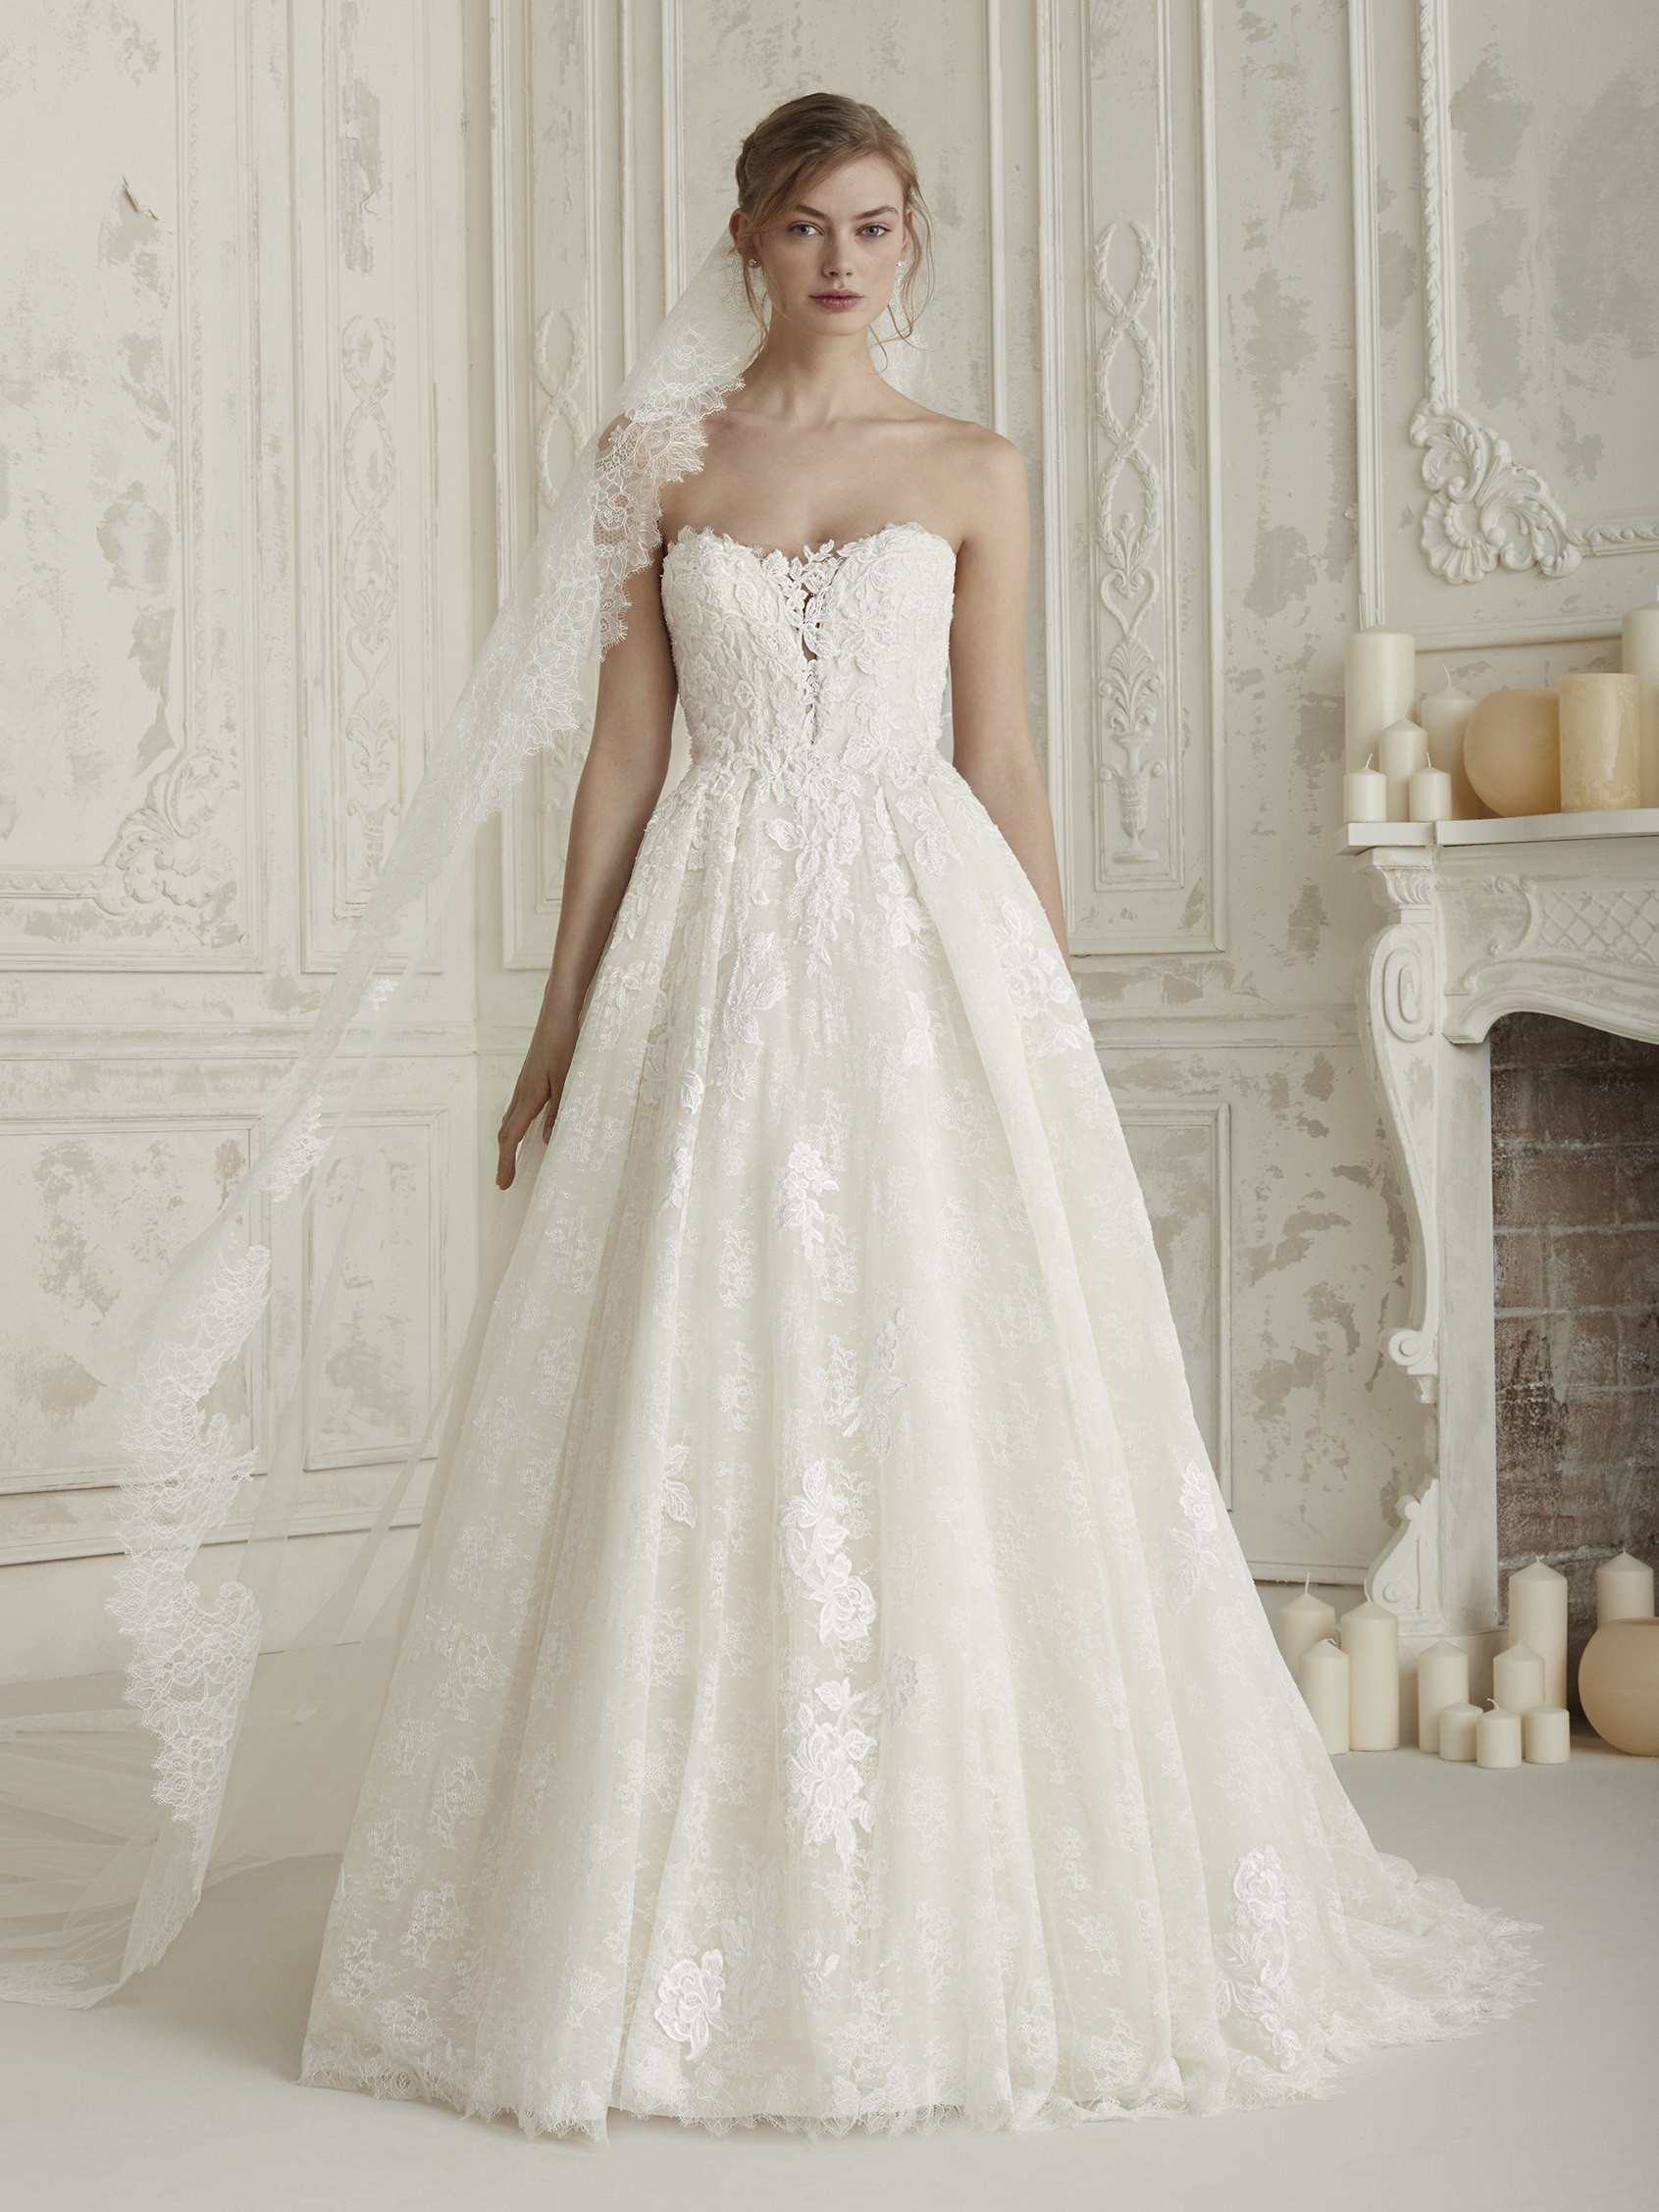 Princess wedding dress with sparkling beading ELBIA | Pronovias